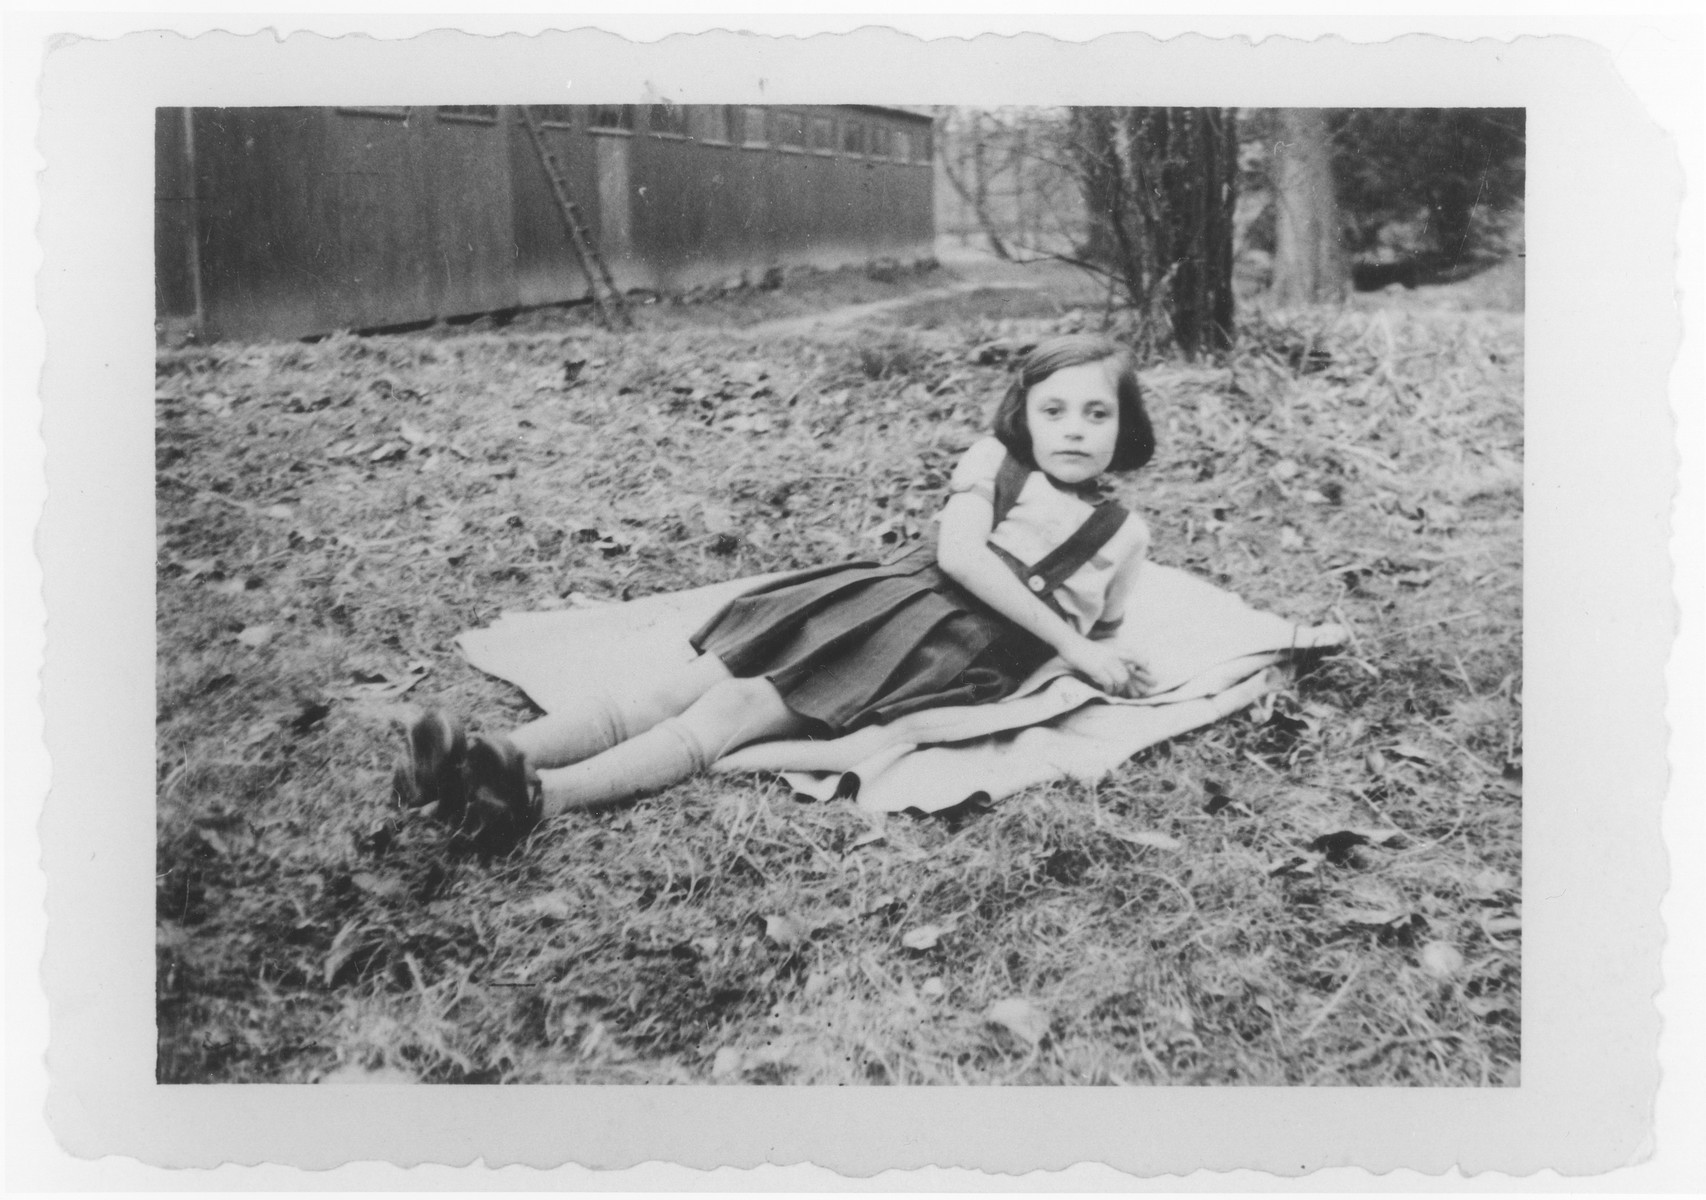 Gisela Soldinger rests on the grass in Bilzen where her family was forced to live in anticipation of deportation back to Germany.